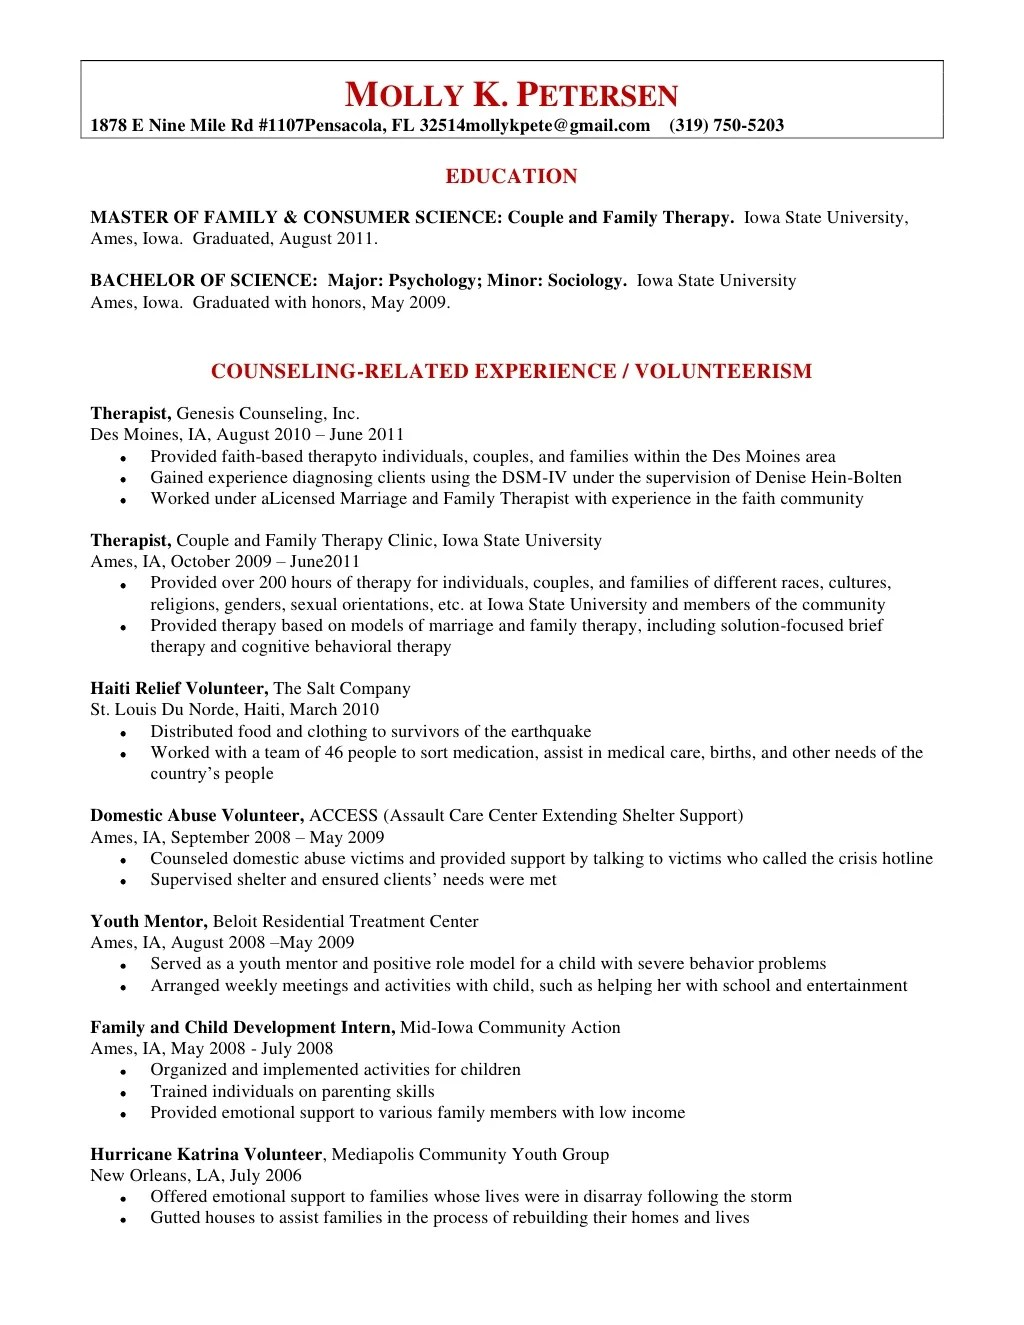 marriage and family therapist resume samples what is a resume